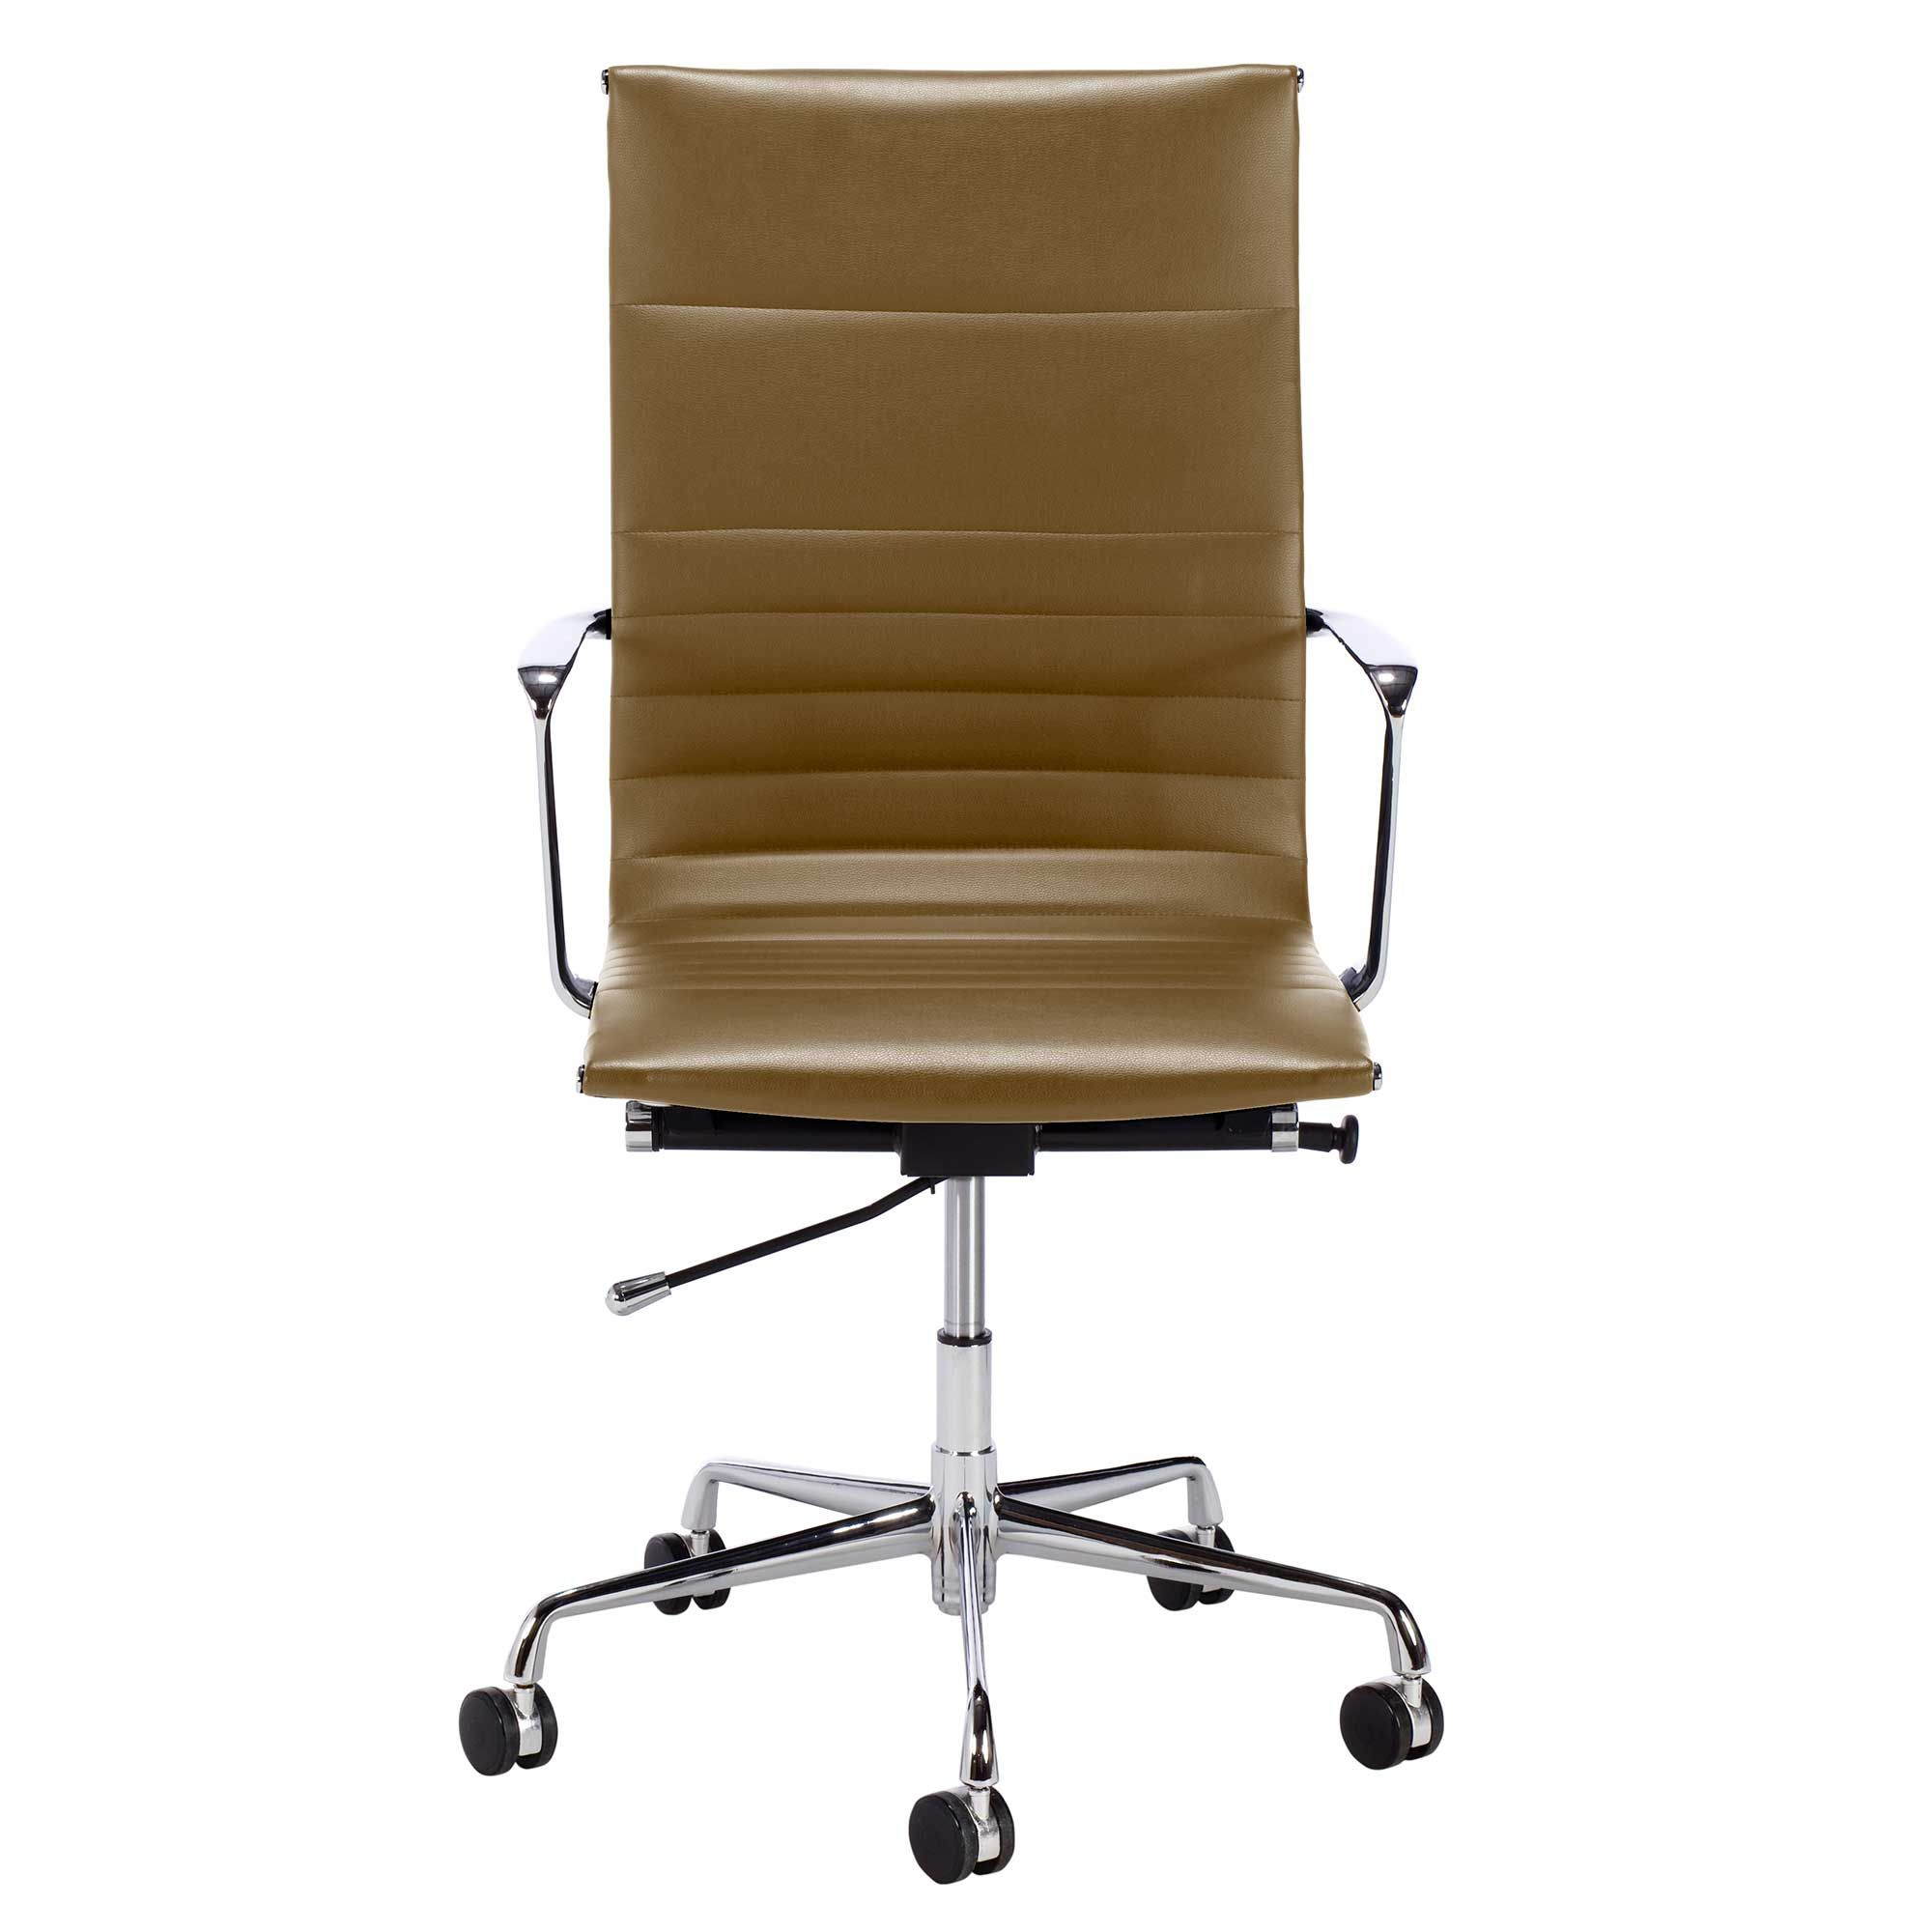 stylish home office chairs. Make More Of Your Home Office With This Stylish Lynley Chair - View Chairs E